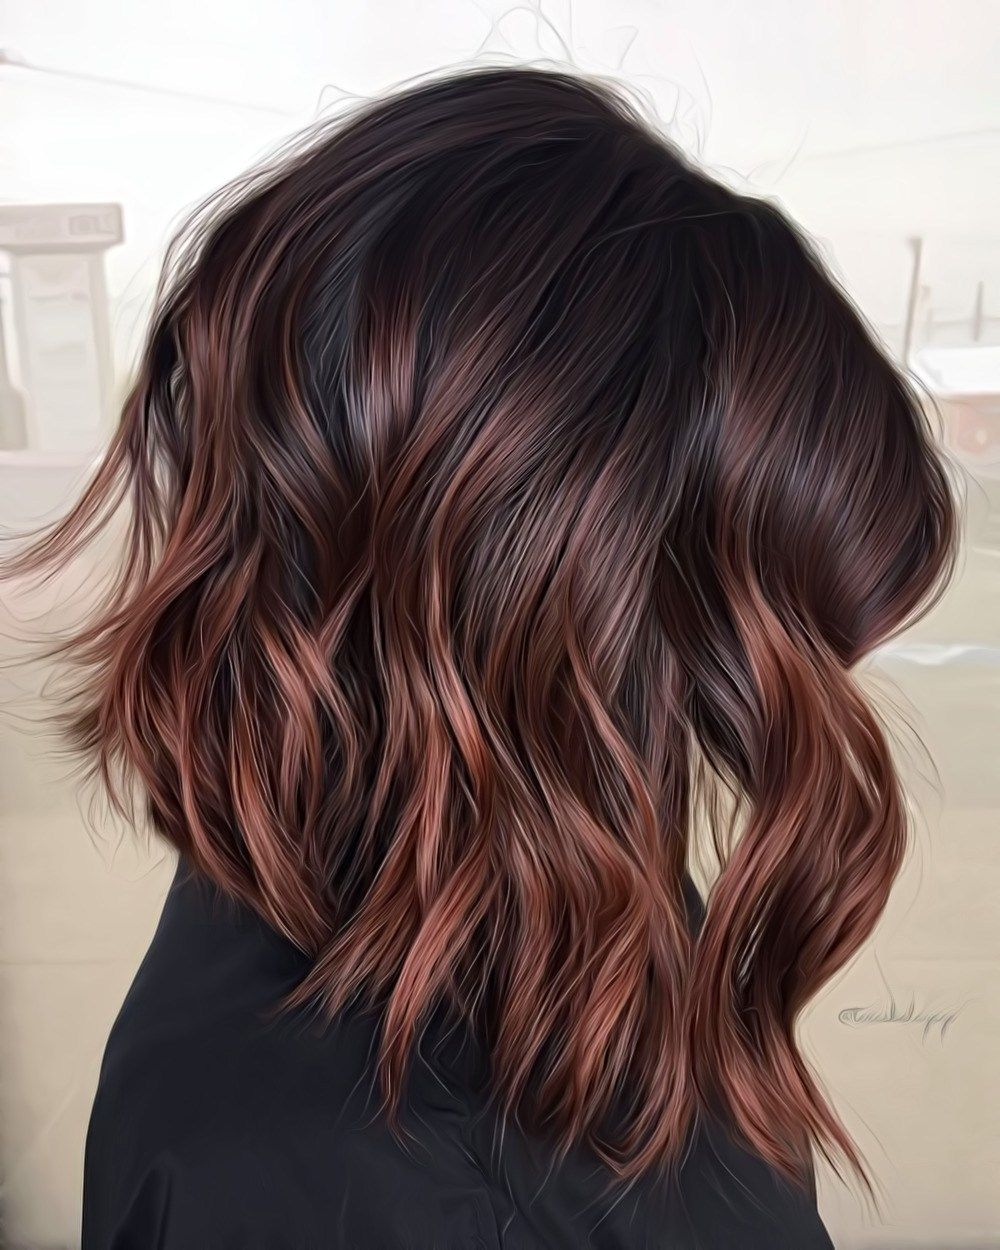 70 Flattering Balayage Hair Color Ideas For 2020 Balayage Hair Chocolate Brown Hair Color Short Hair Balayage